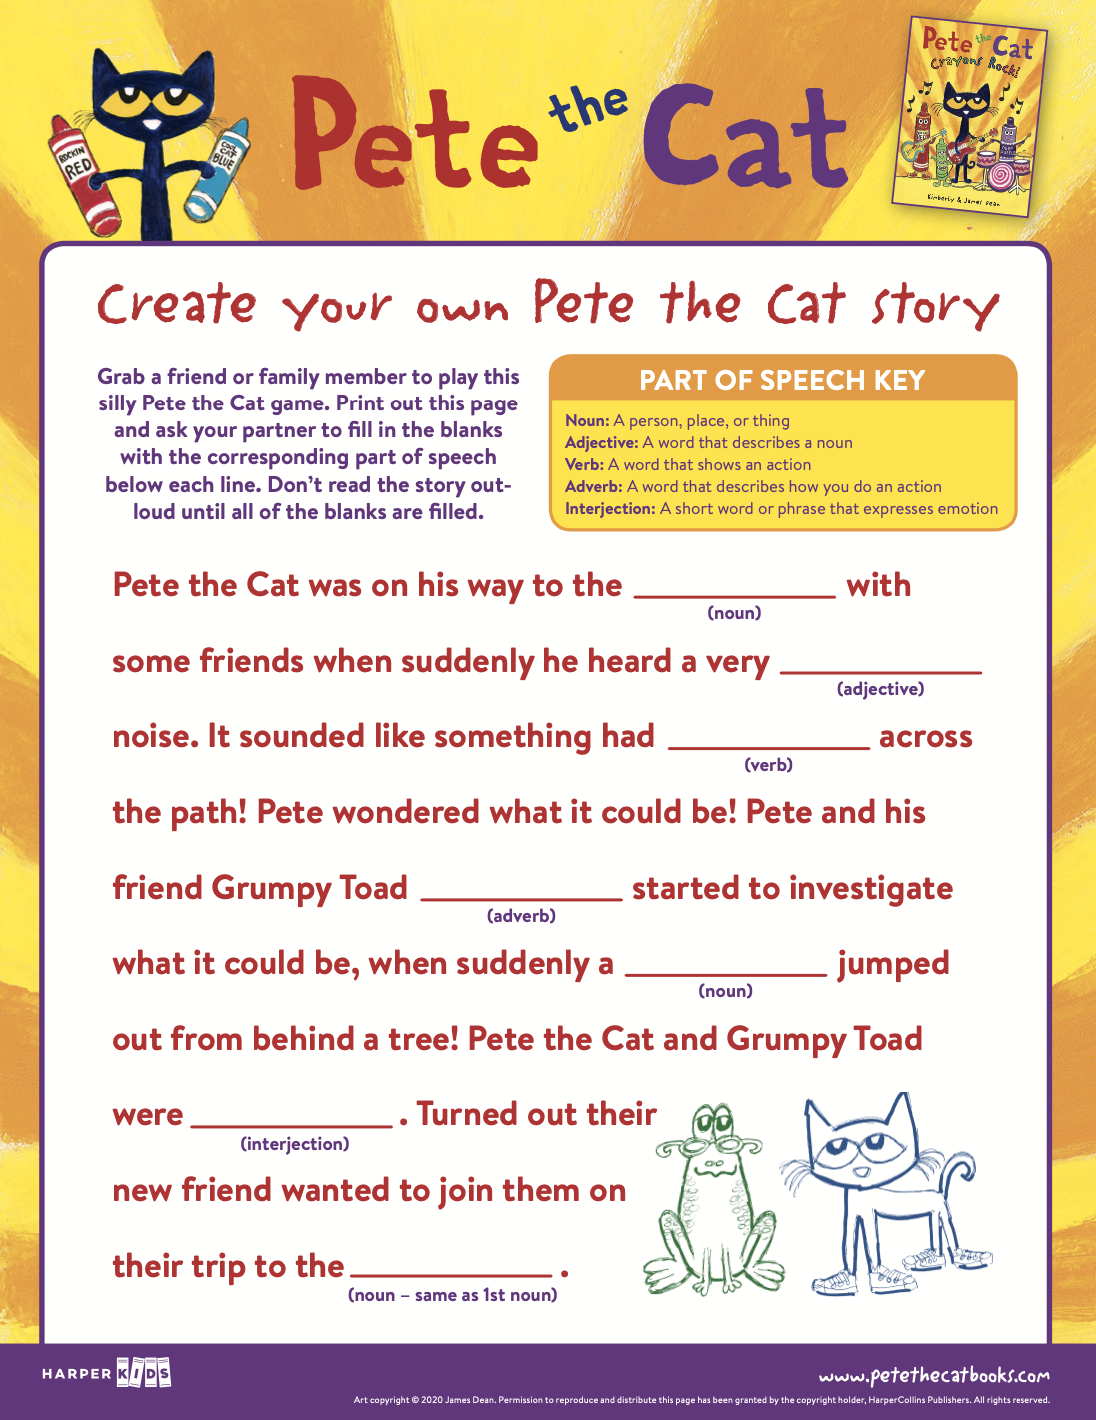 Create your own Pete the Cat story